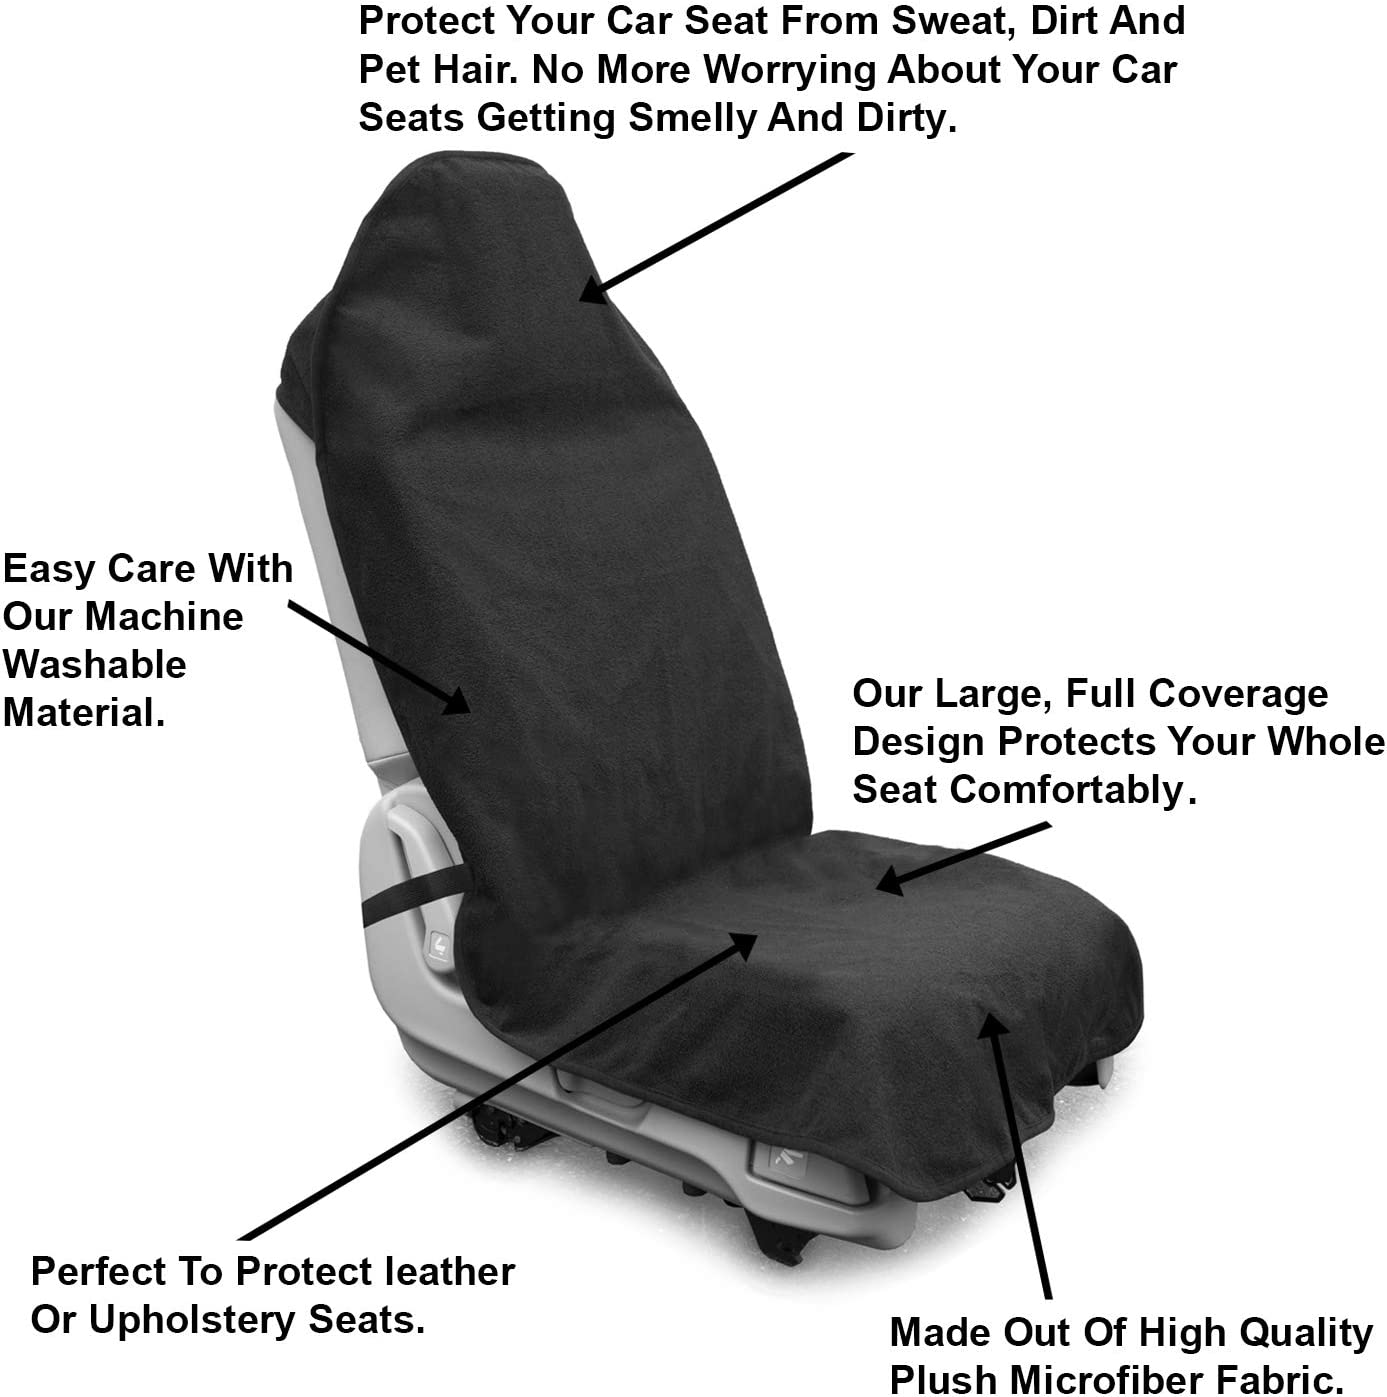 SUVs and Trucks Running Universal Fit Anti-Slip Bucket Seat Protector for Cars lebogner Waterproof Sweat Towel Car Seat Cover for Post Gym Workout Beach and Hiking Machine Washable Swimming